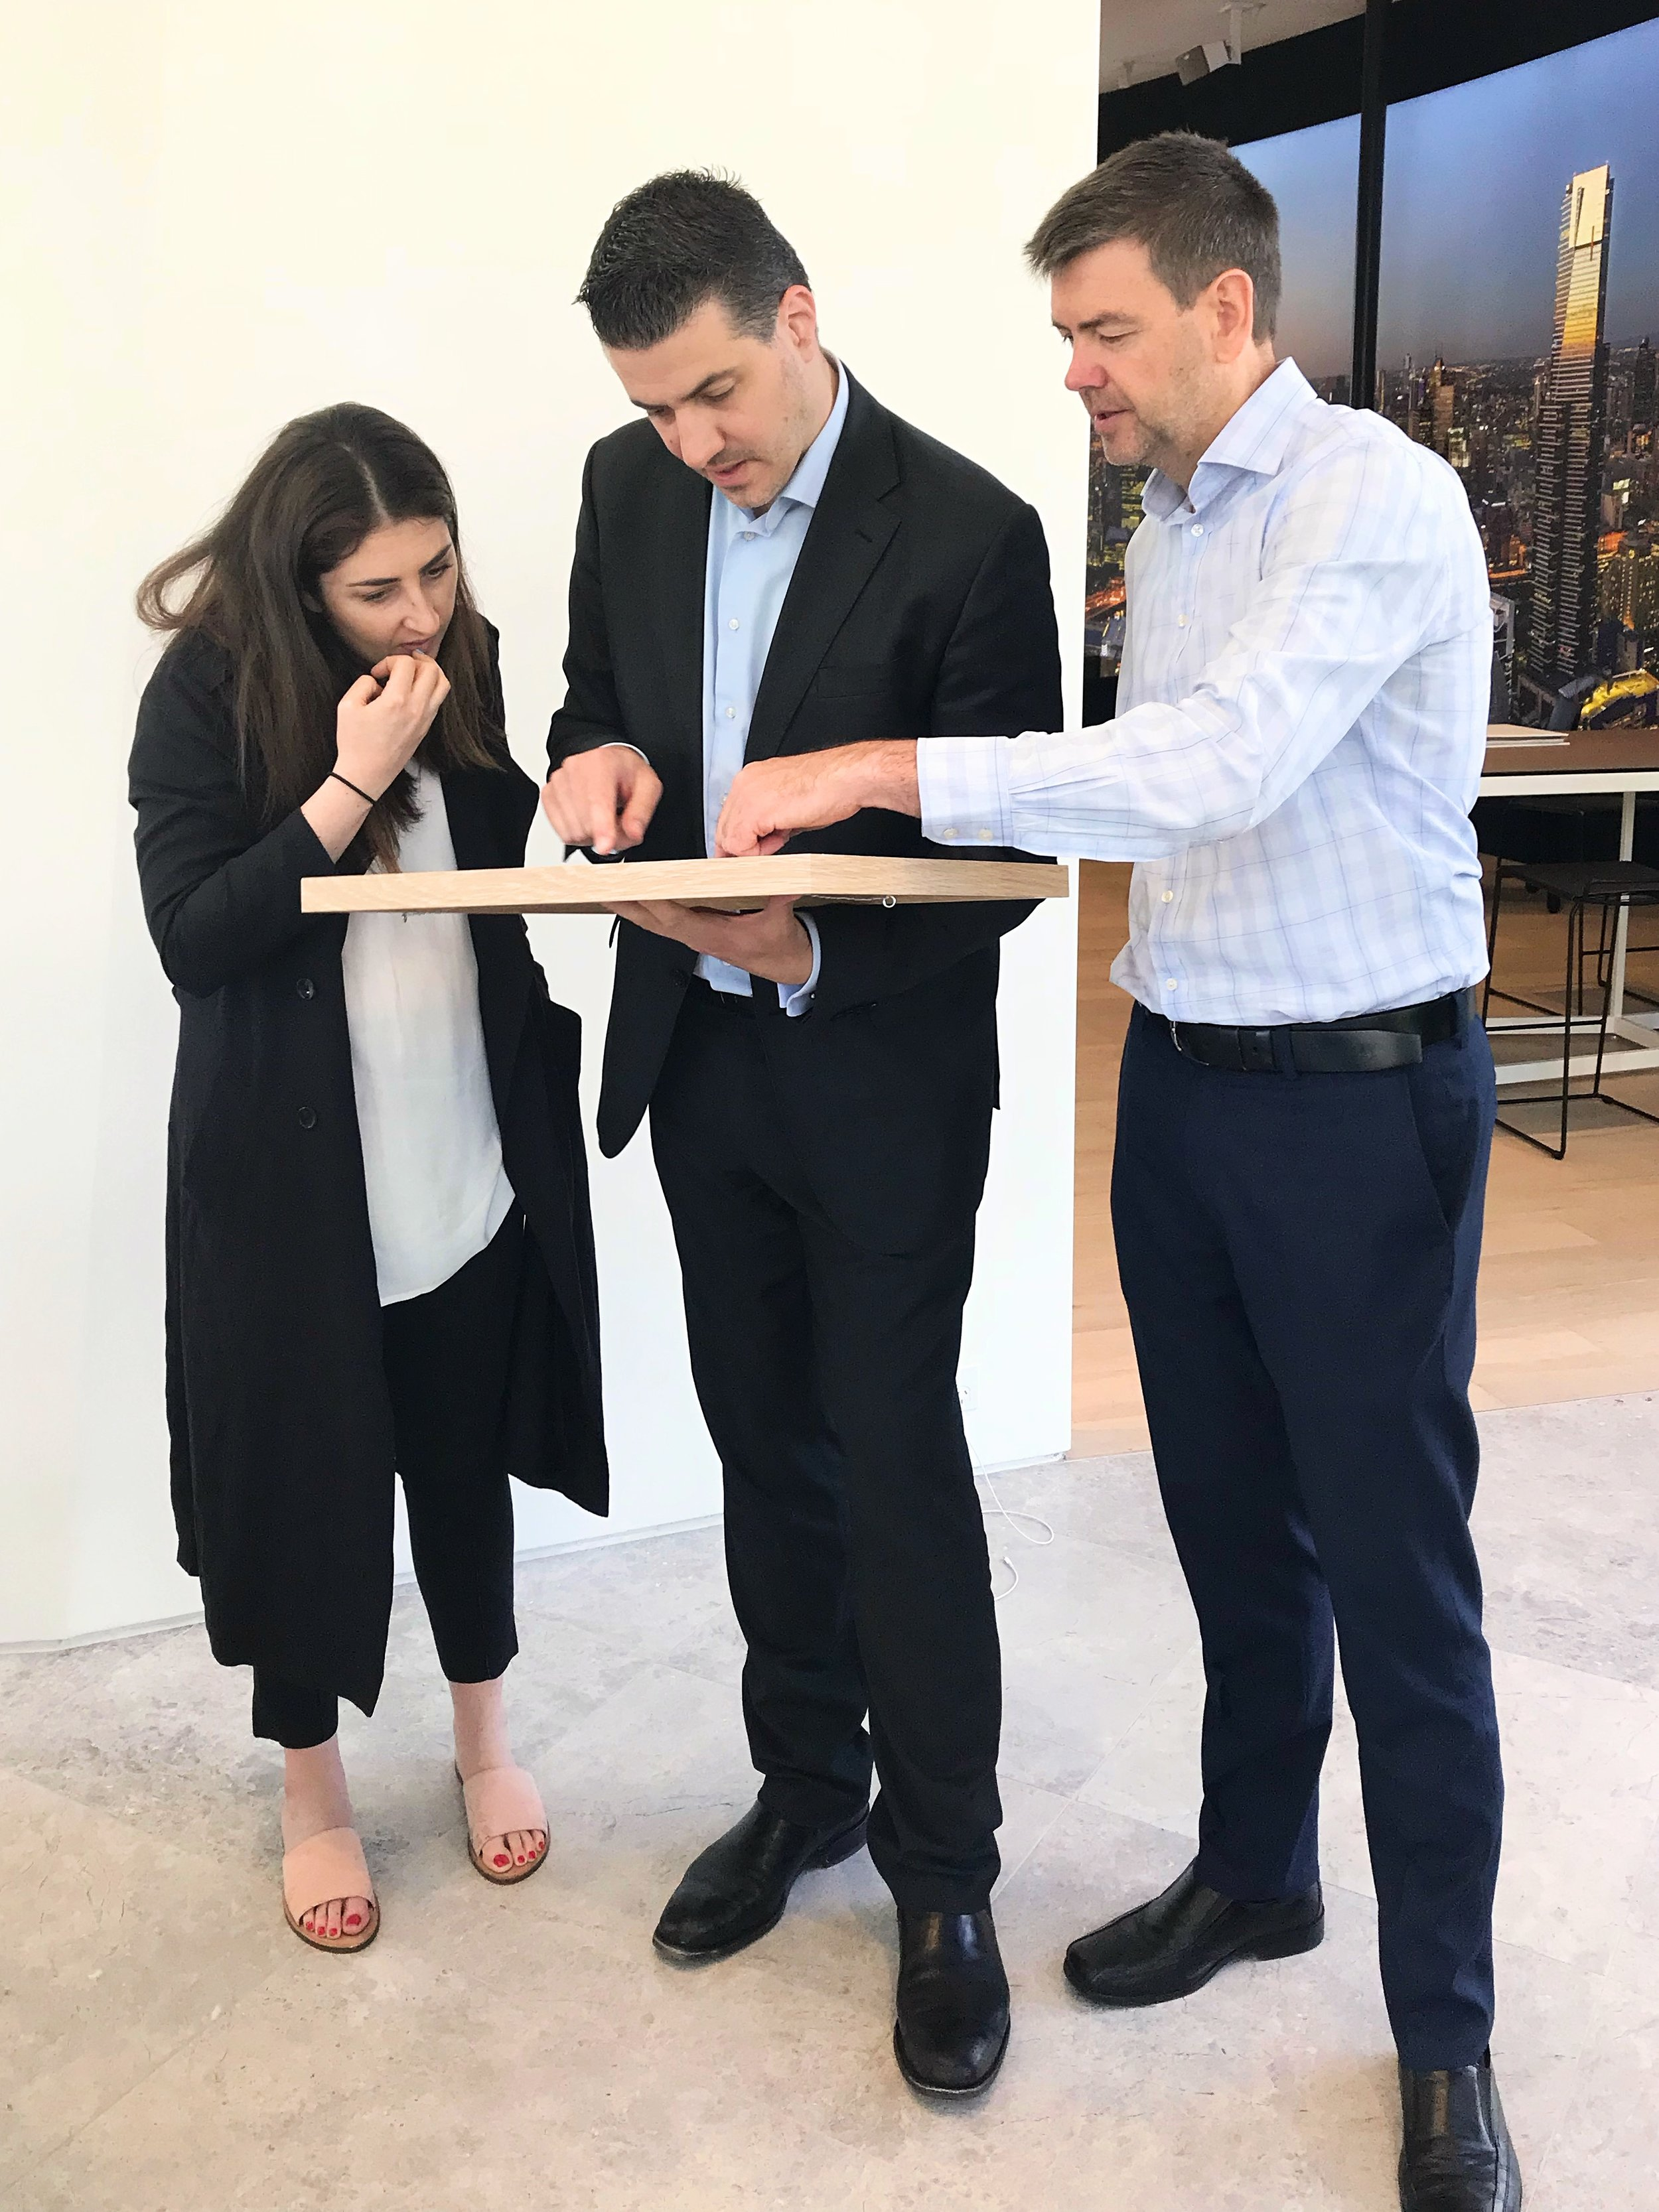 Project Manager, Jesika Smethurst, Project Manager, Andrew Mantzounis, and Construction Director, Steven Tucker, examining the Melbourne Square project.